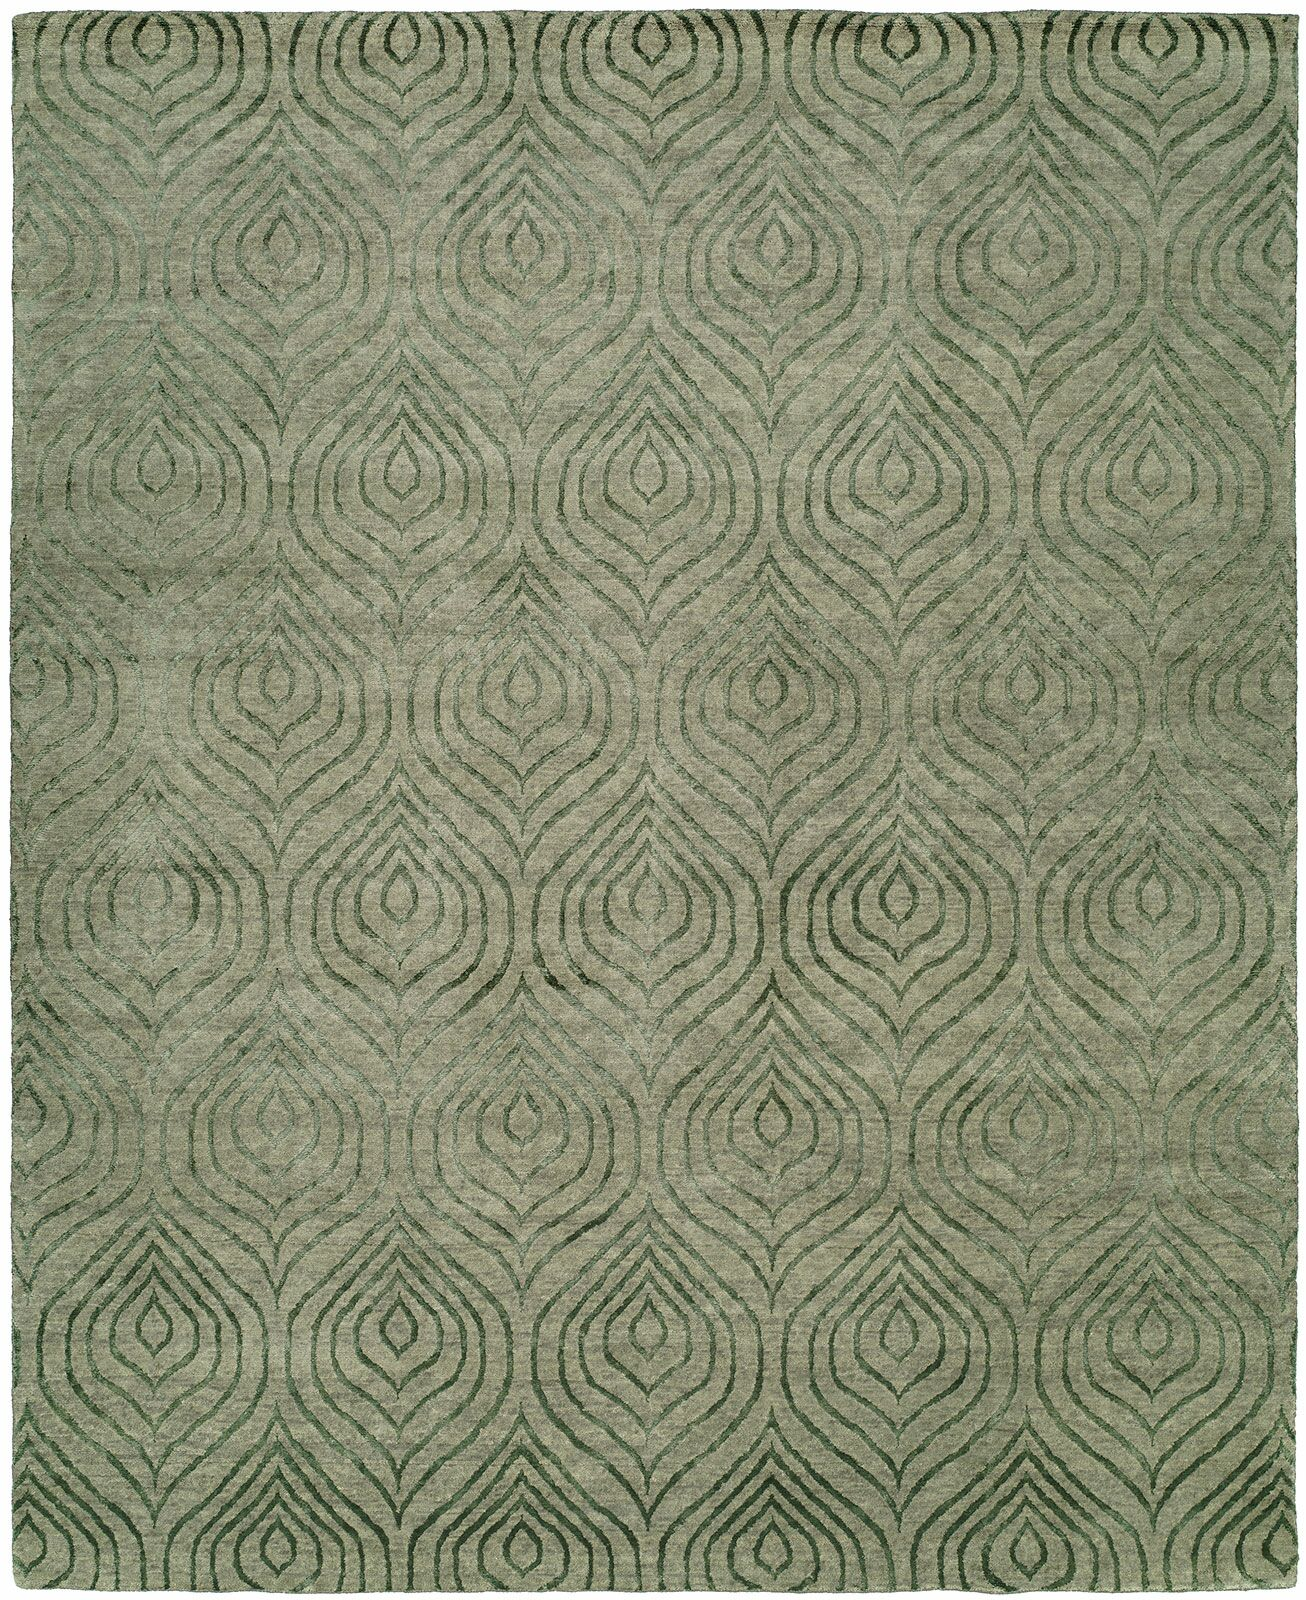 Montpelier Hand-Knotted Gray Area Rug Rug Size: Rectangle 9' x 12'